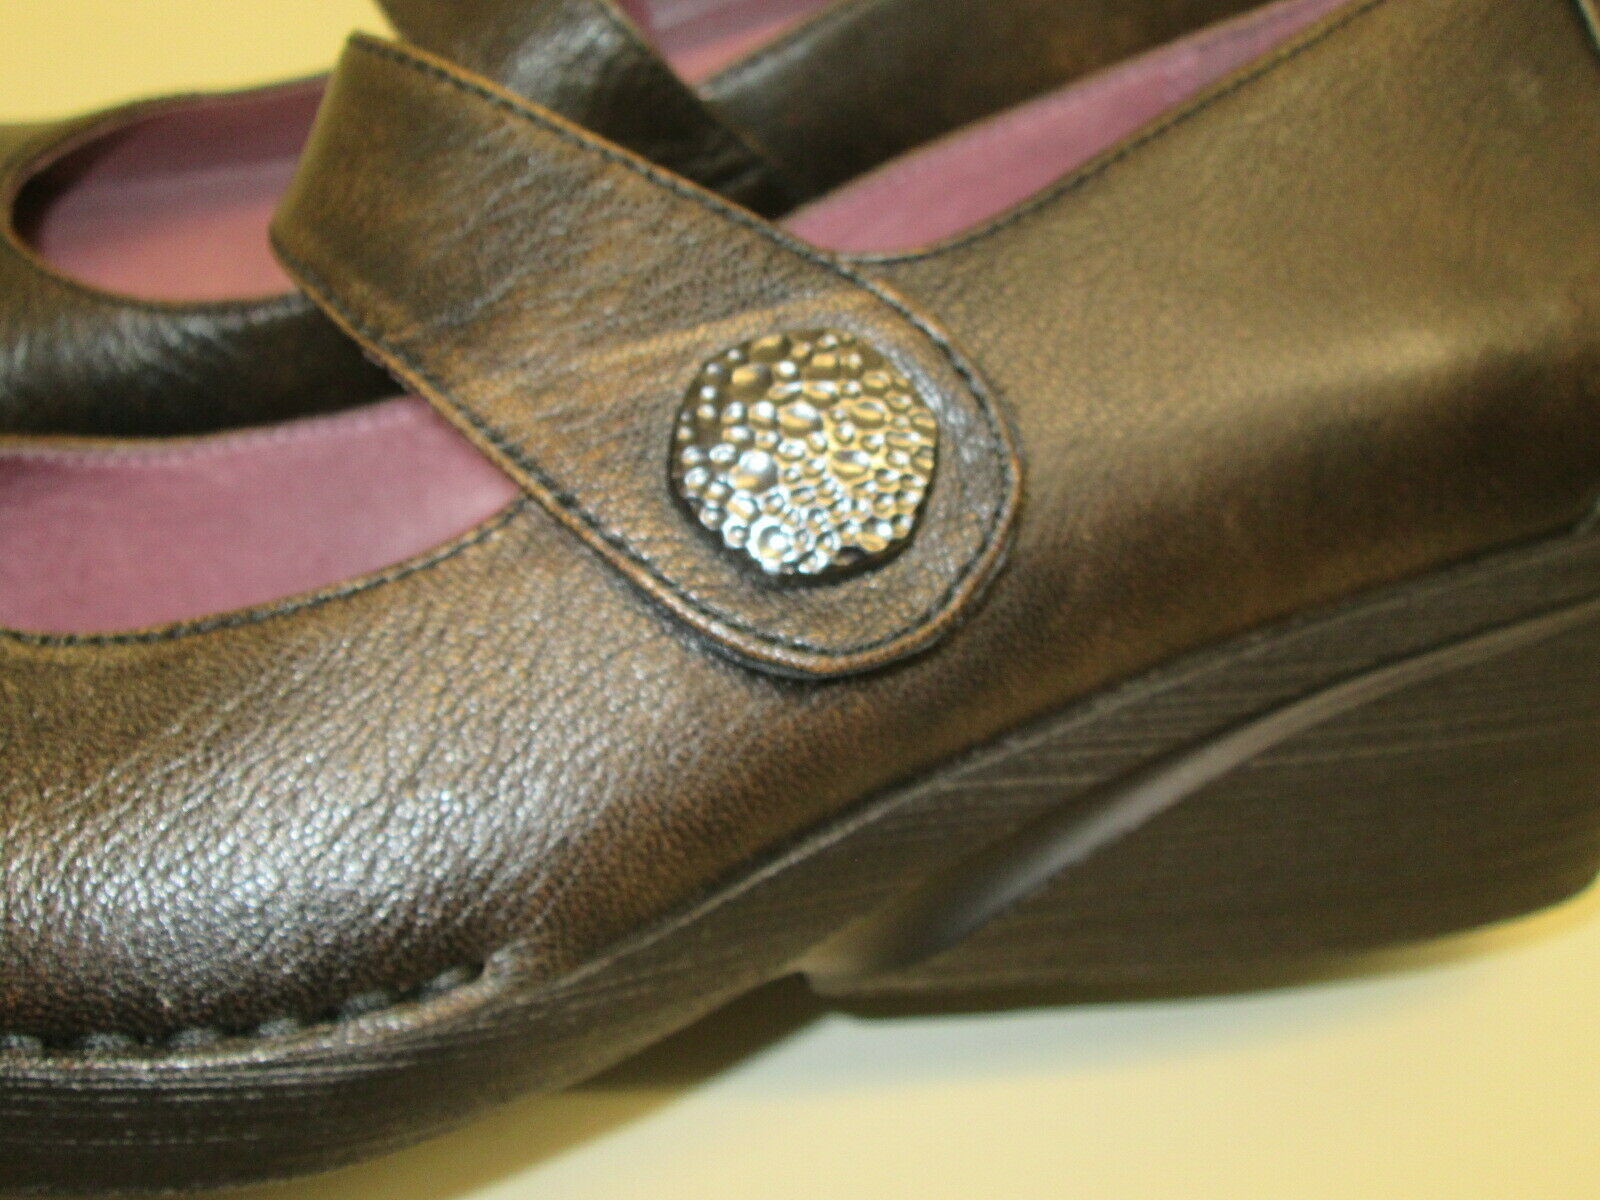 NWOB NWOB NWOB Dansko Adelle Brush Nappa Leather Mary Jane Casual shoes sz 42 brown Cute 199f21